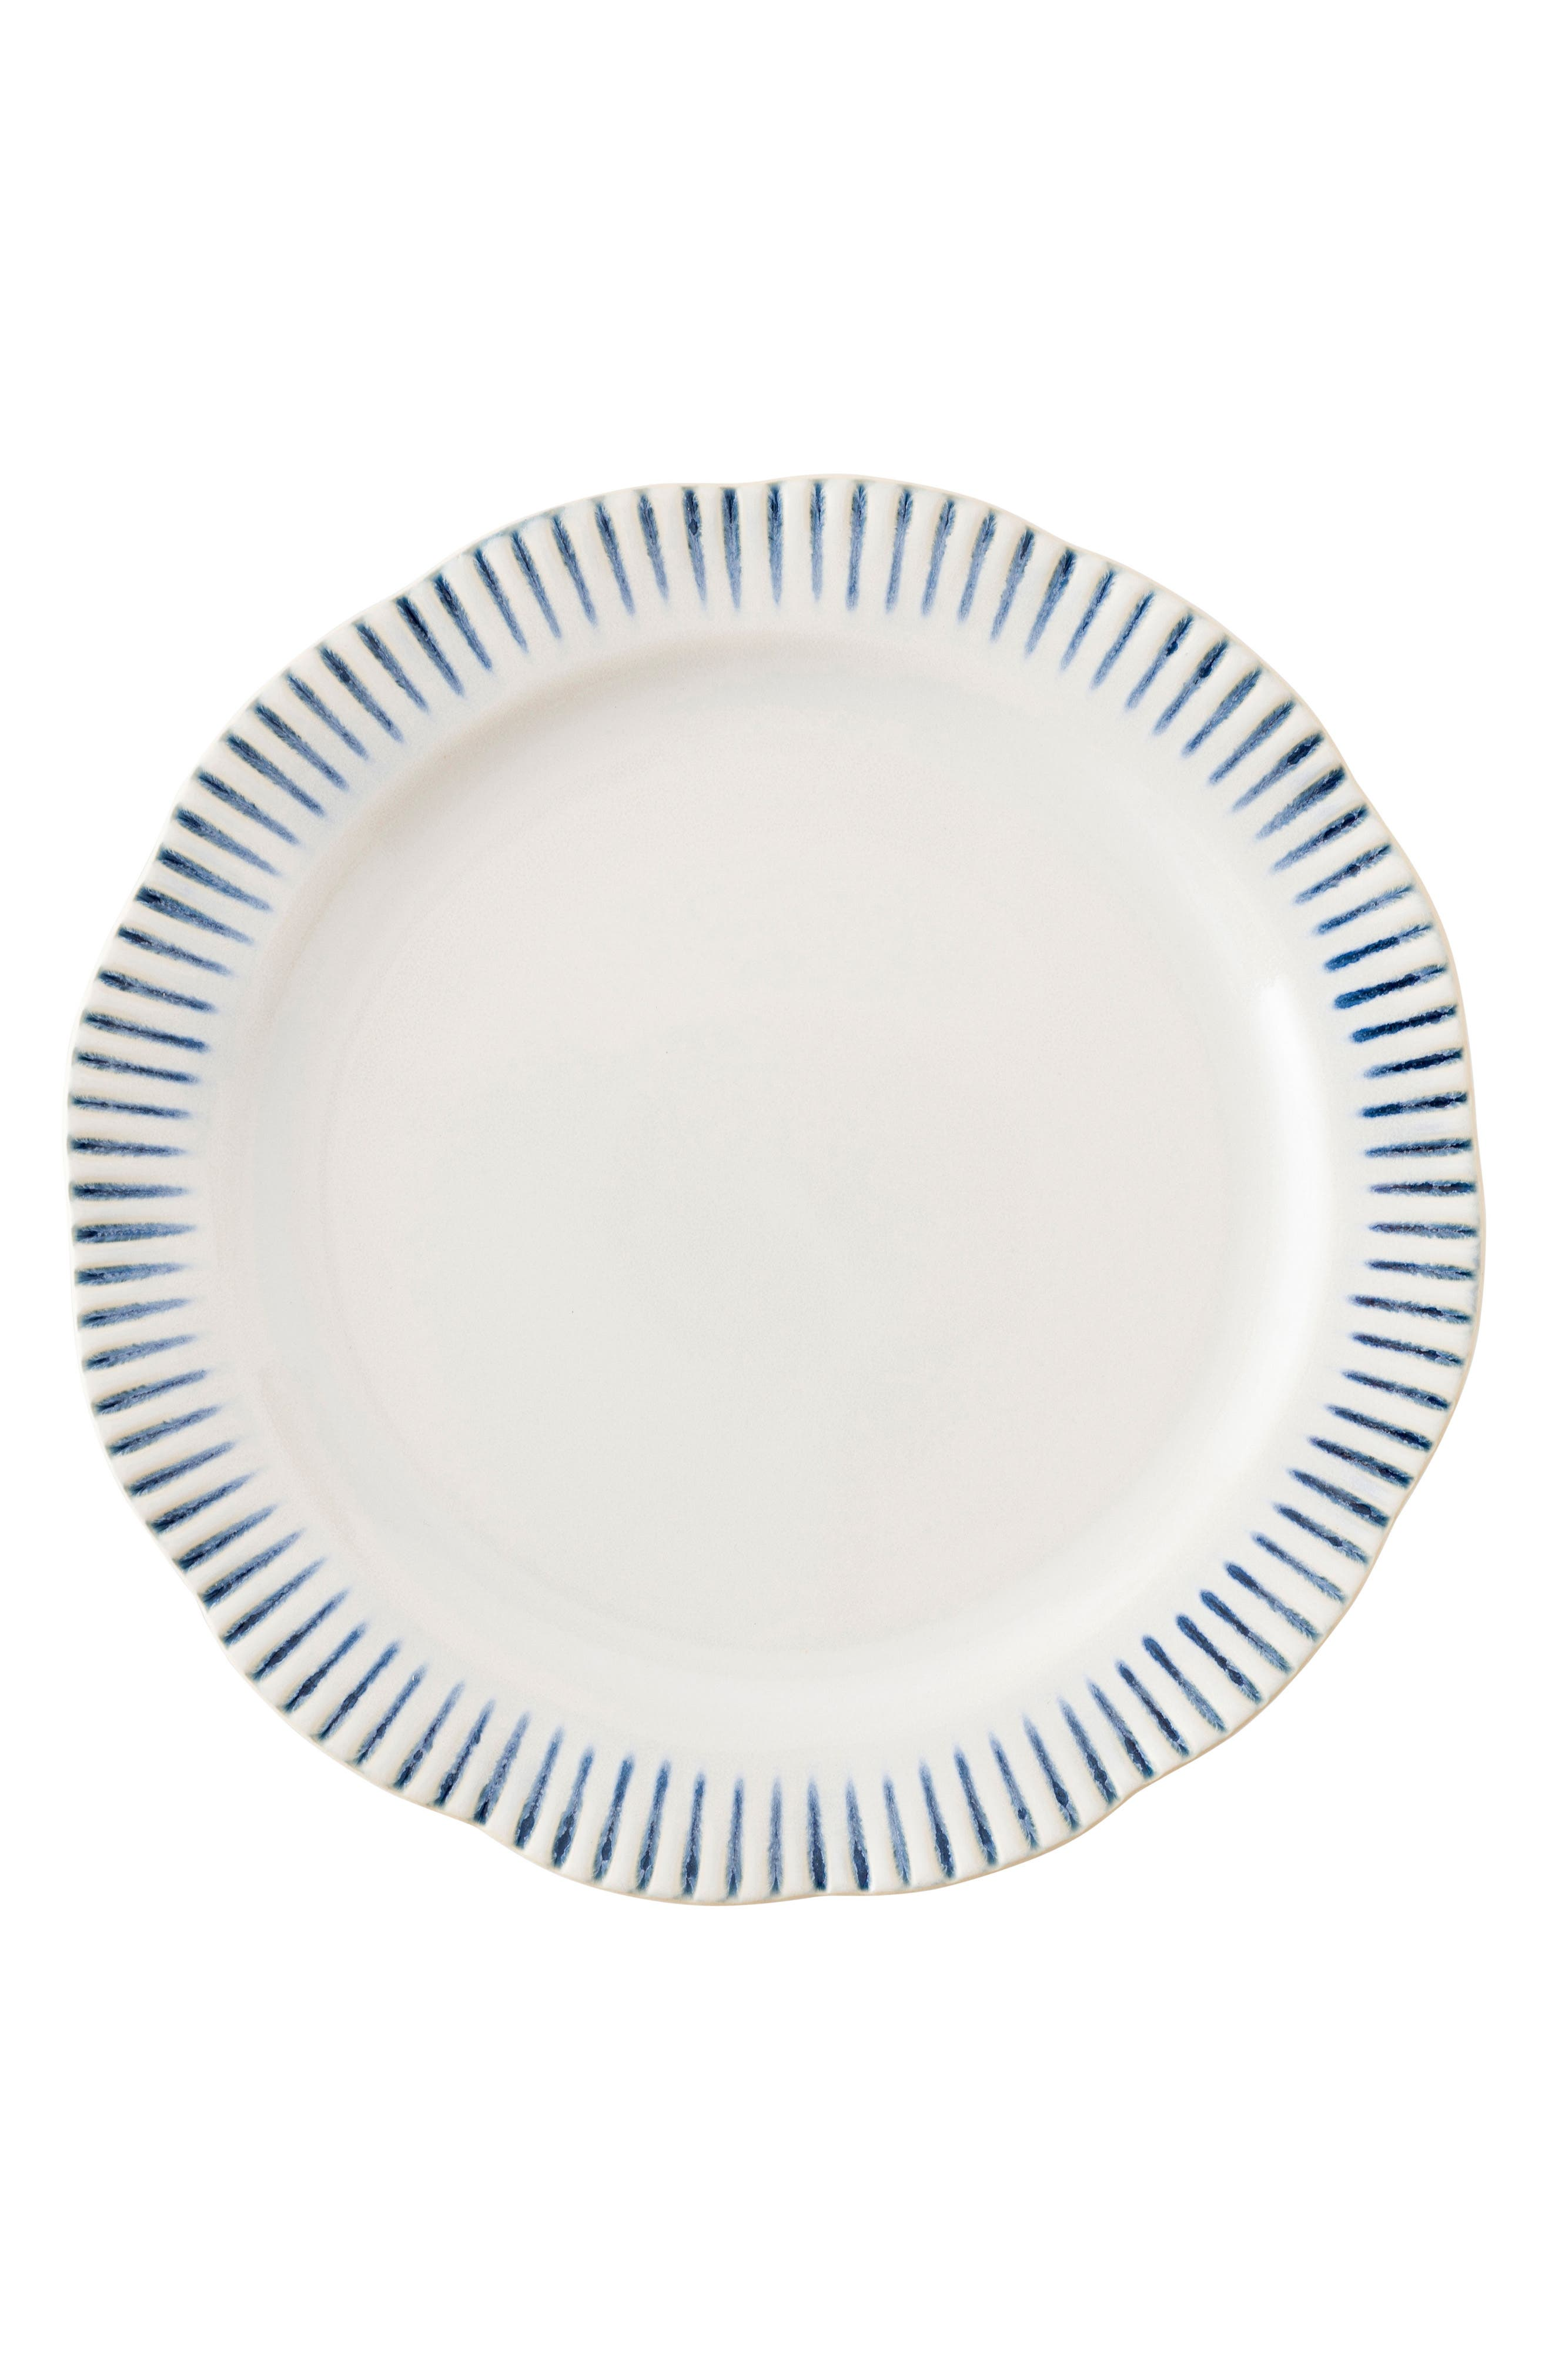 Wanderlust Collection - Sitio Stripe Stoneware Dinner Plate,                         Main,                         color, Indigo